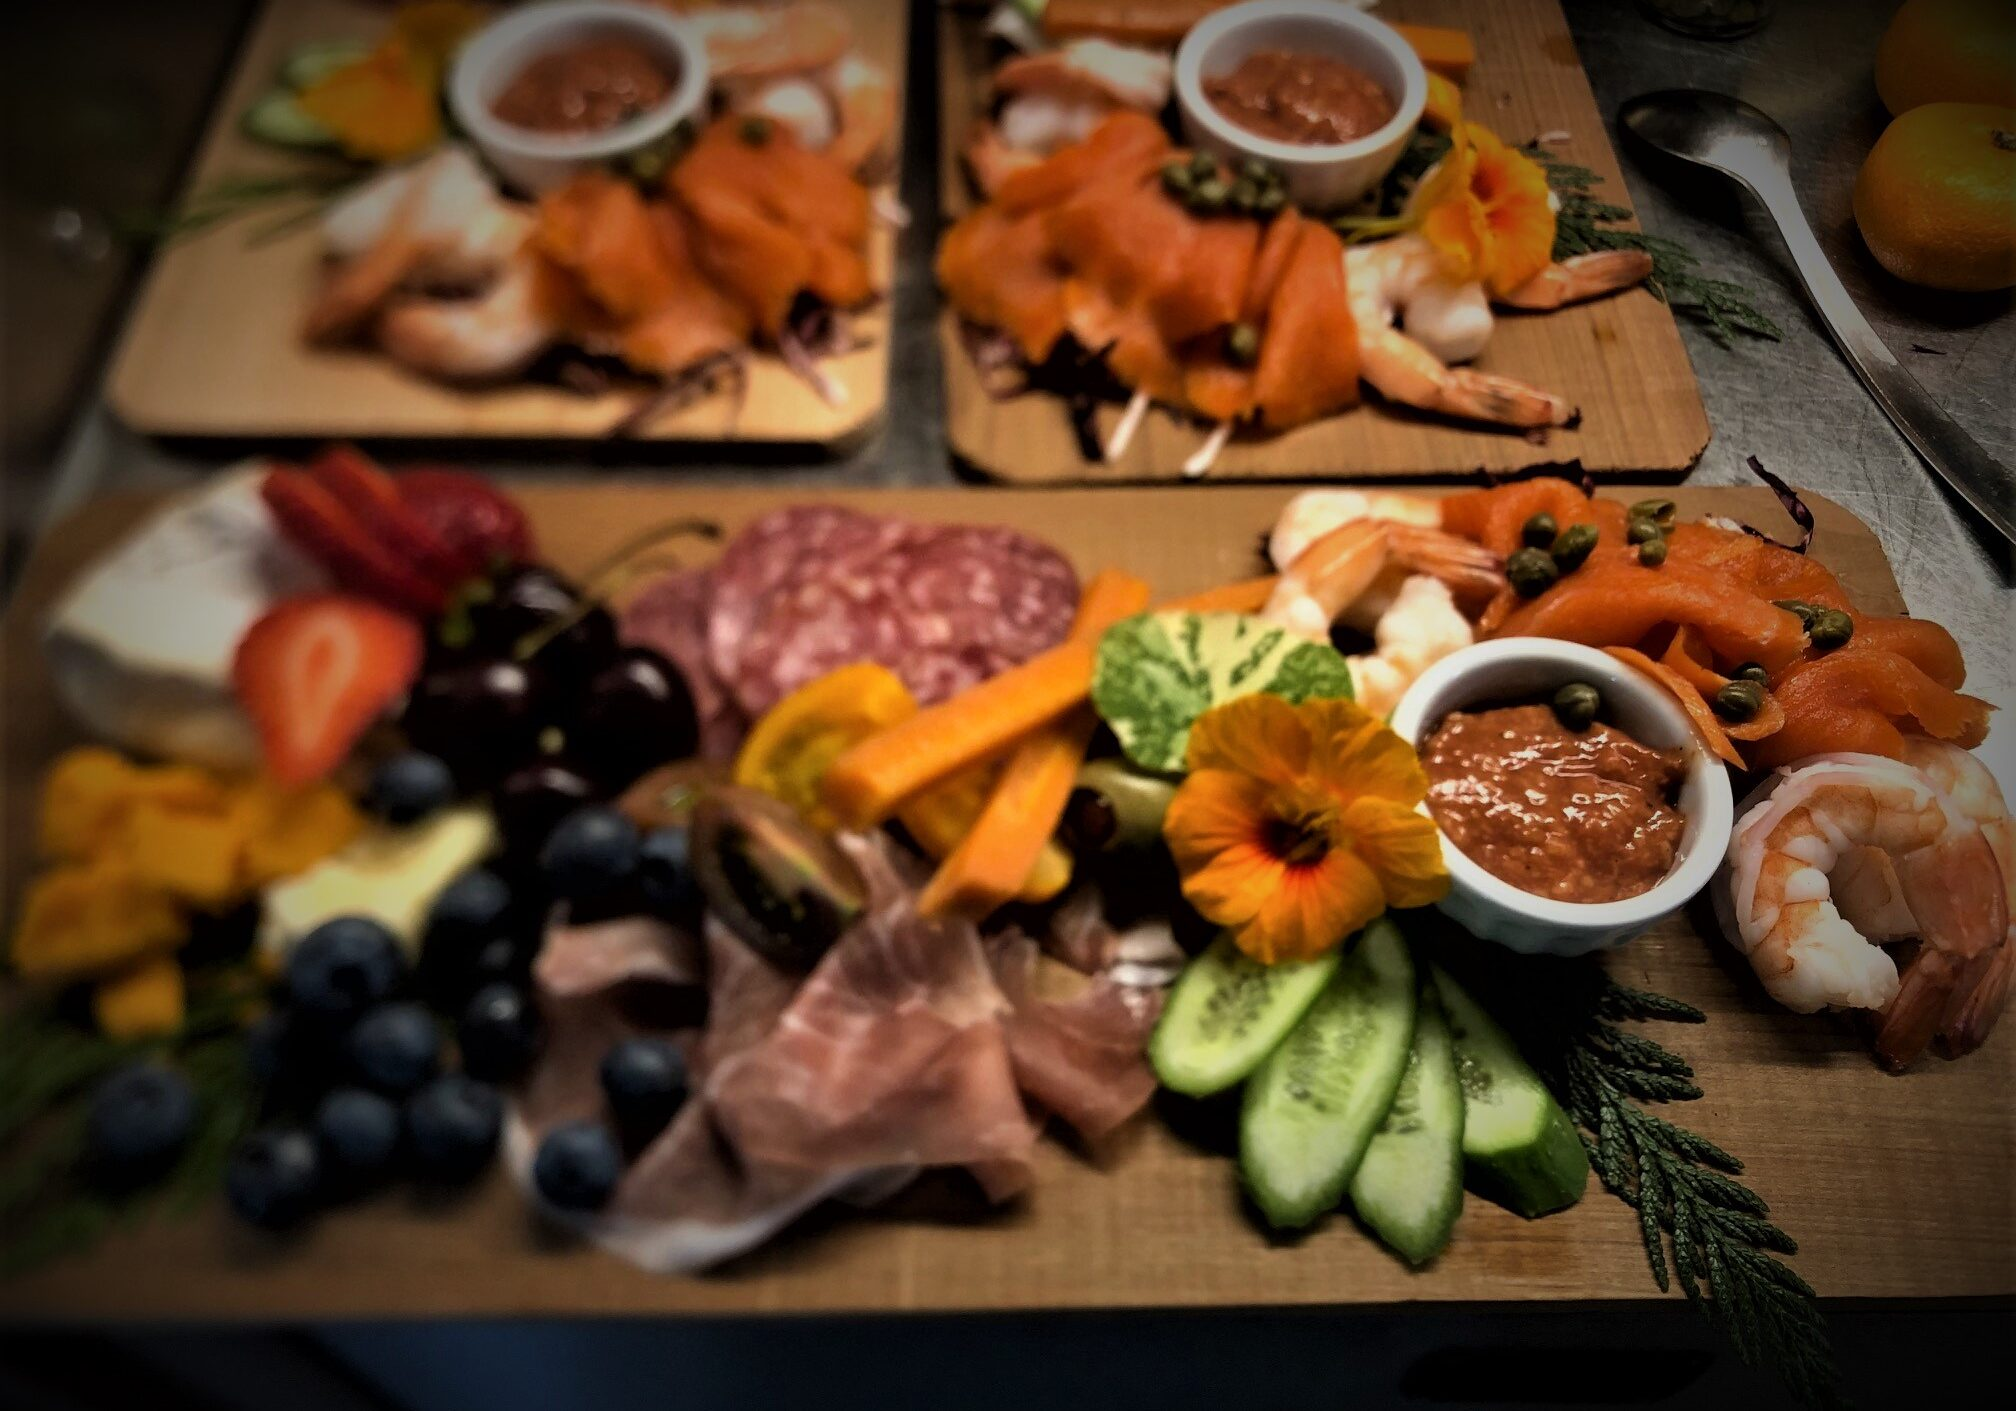 Lunch time charcuterie boards.